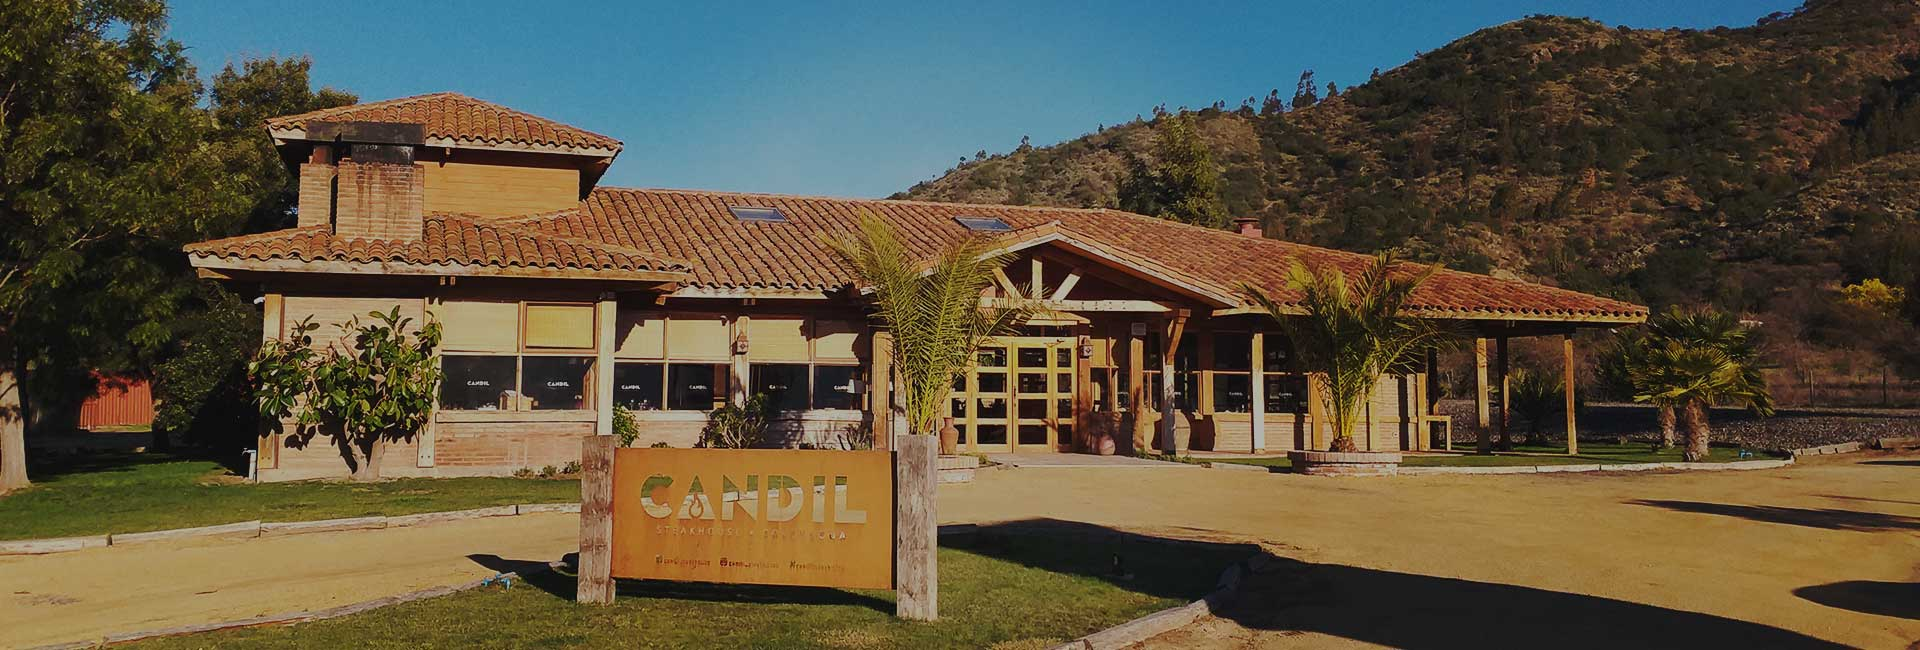 El Candil Steakhouse Header